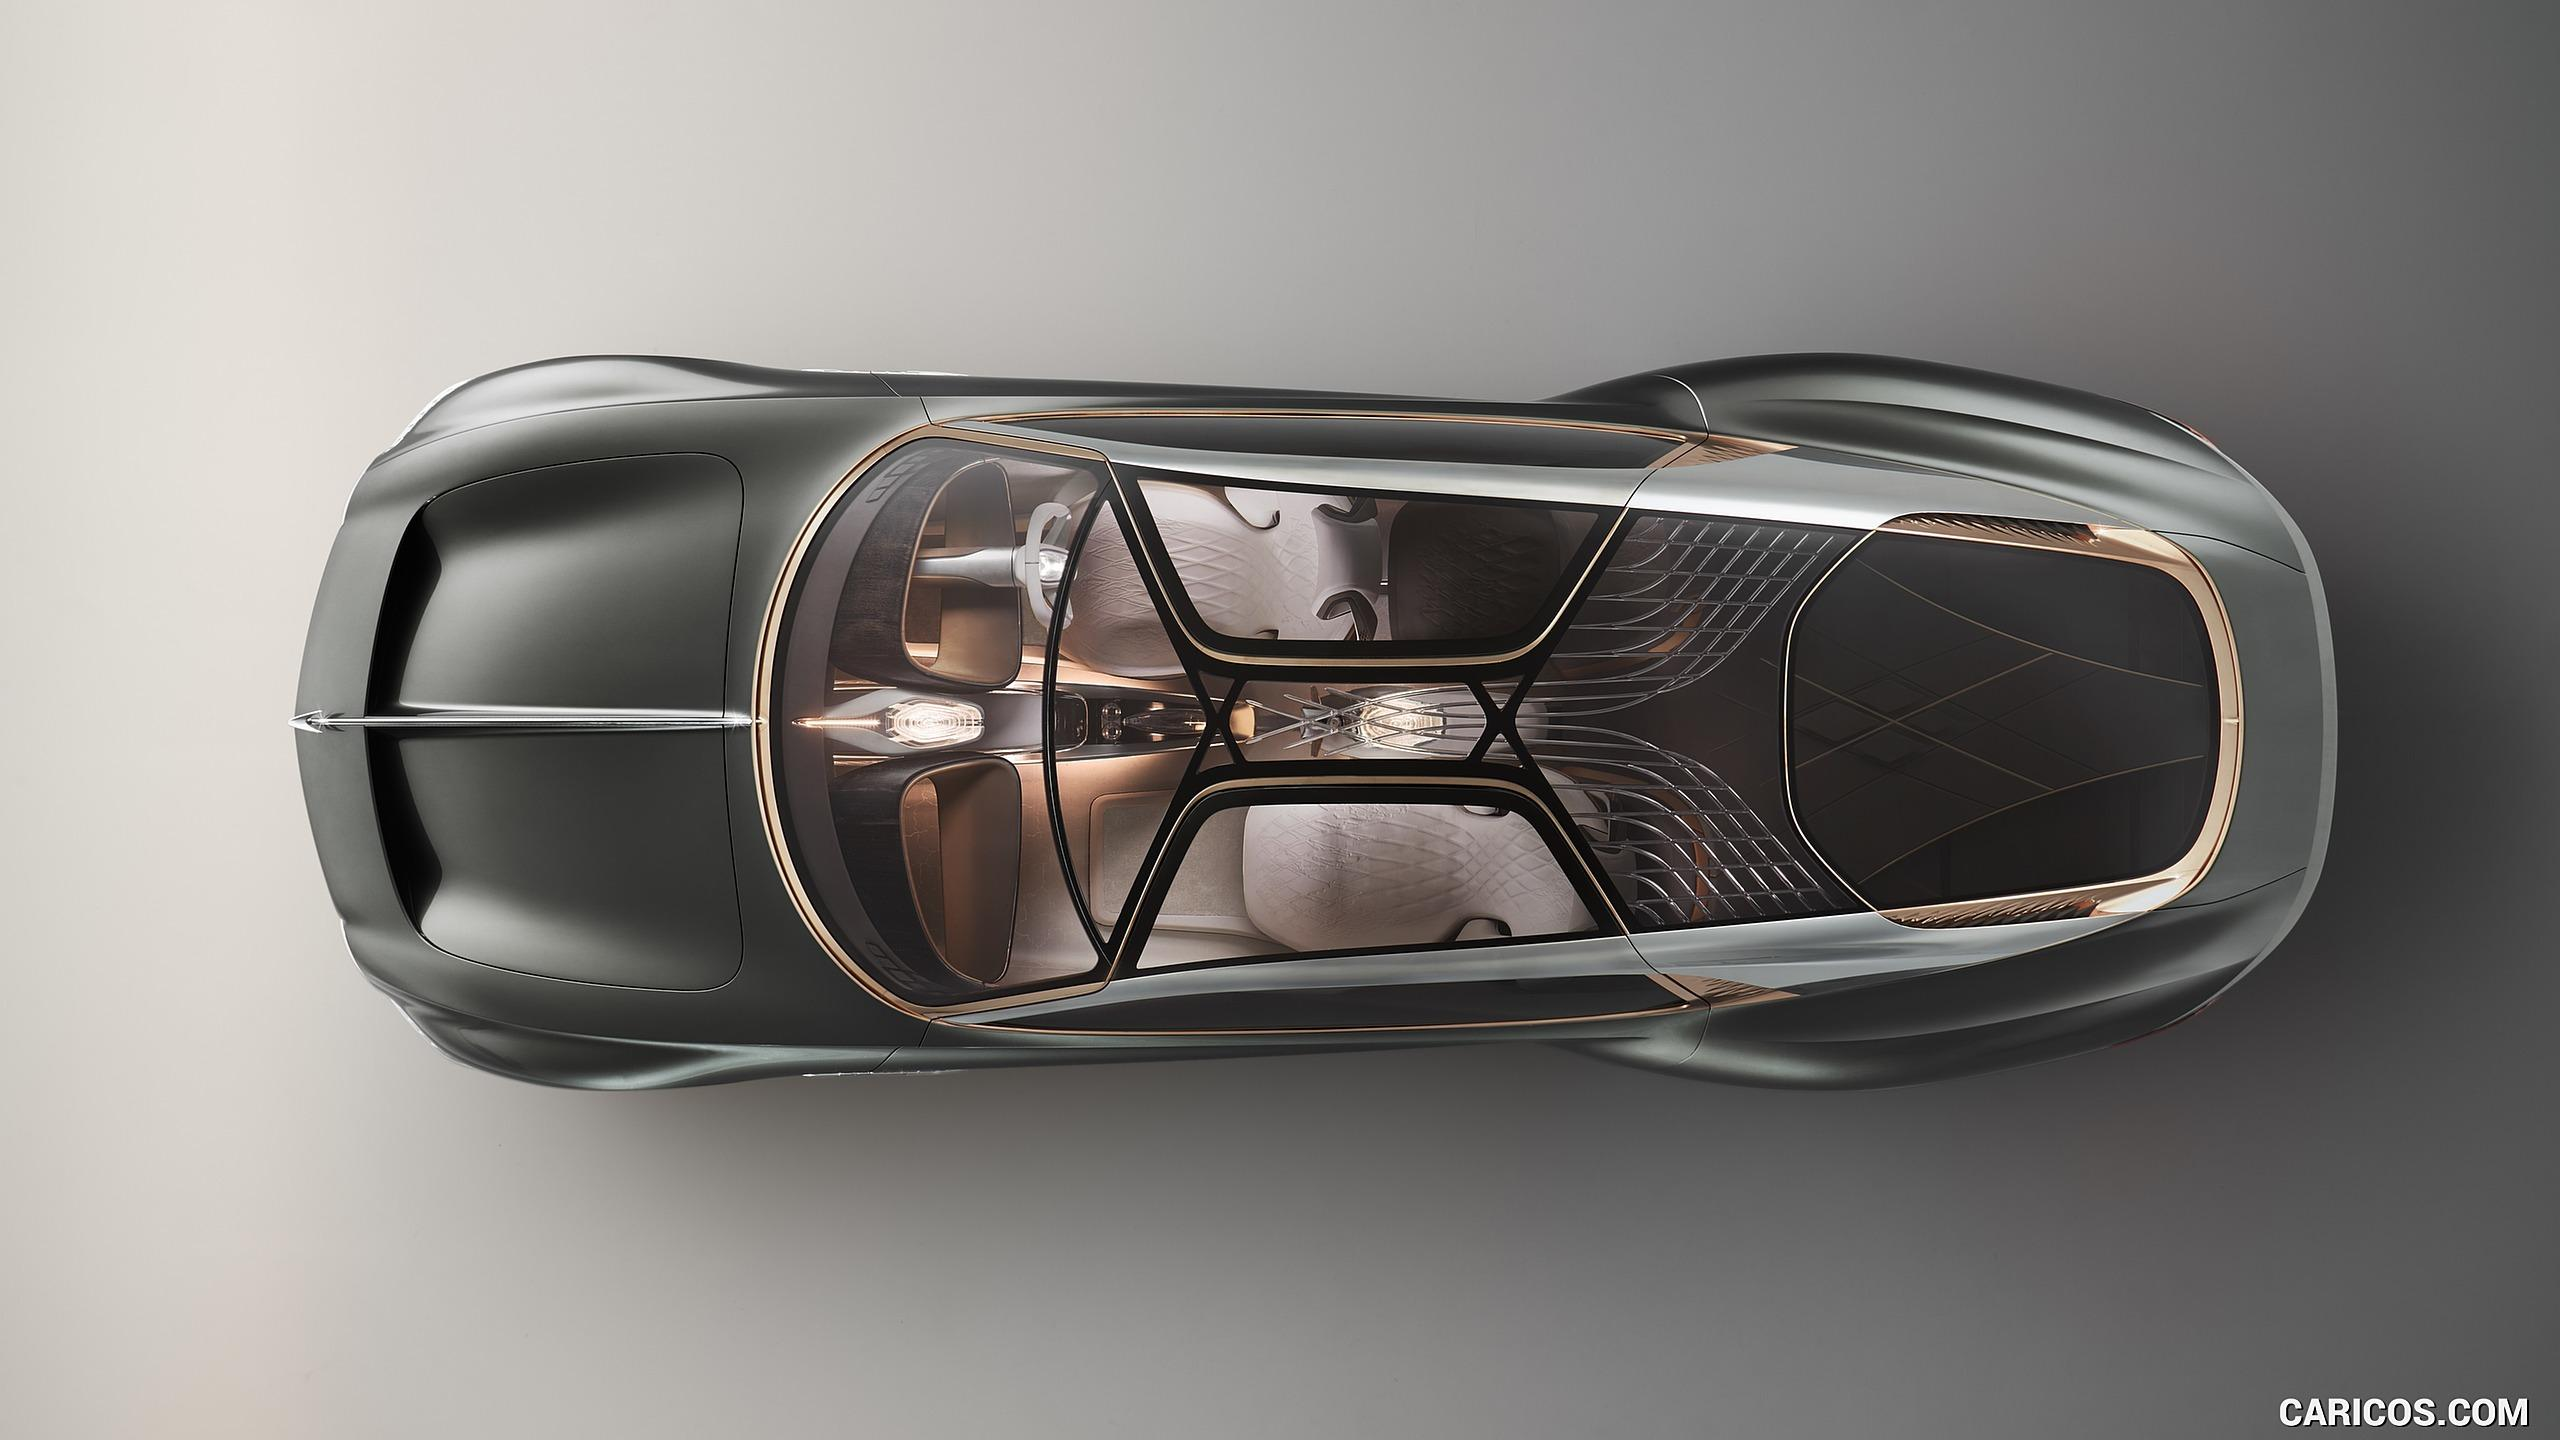 The Bentley EXP 100 GT aerial view